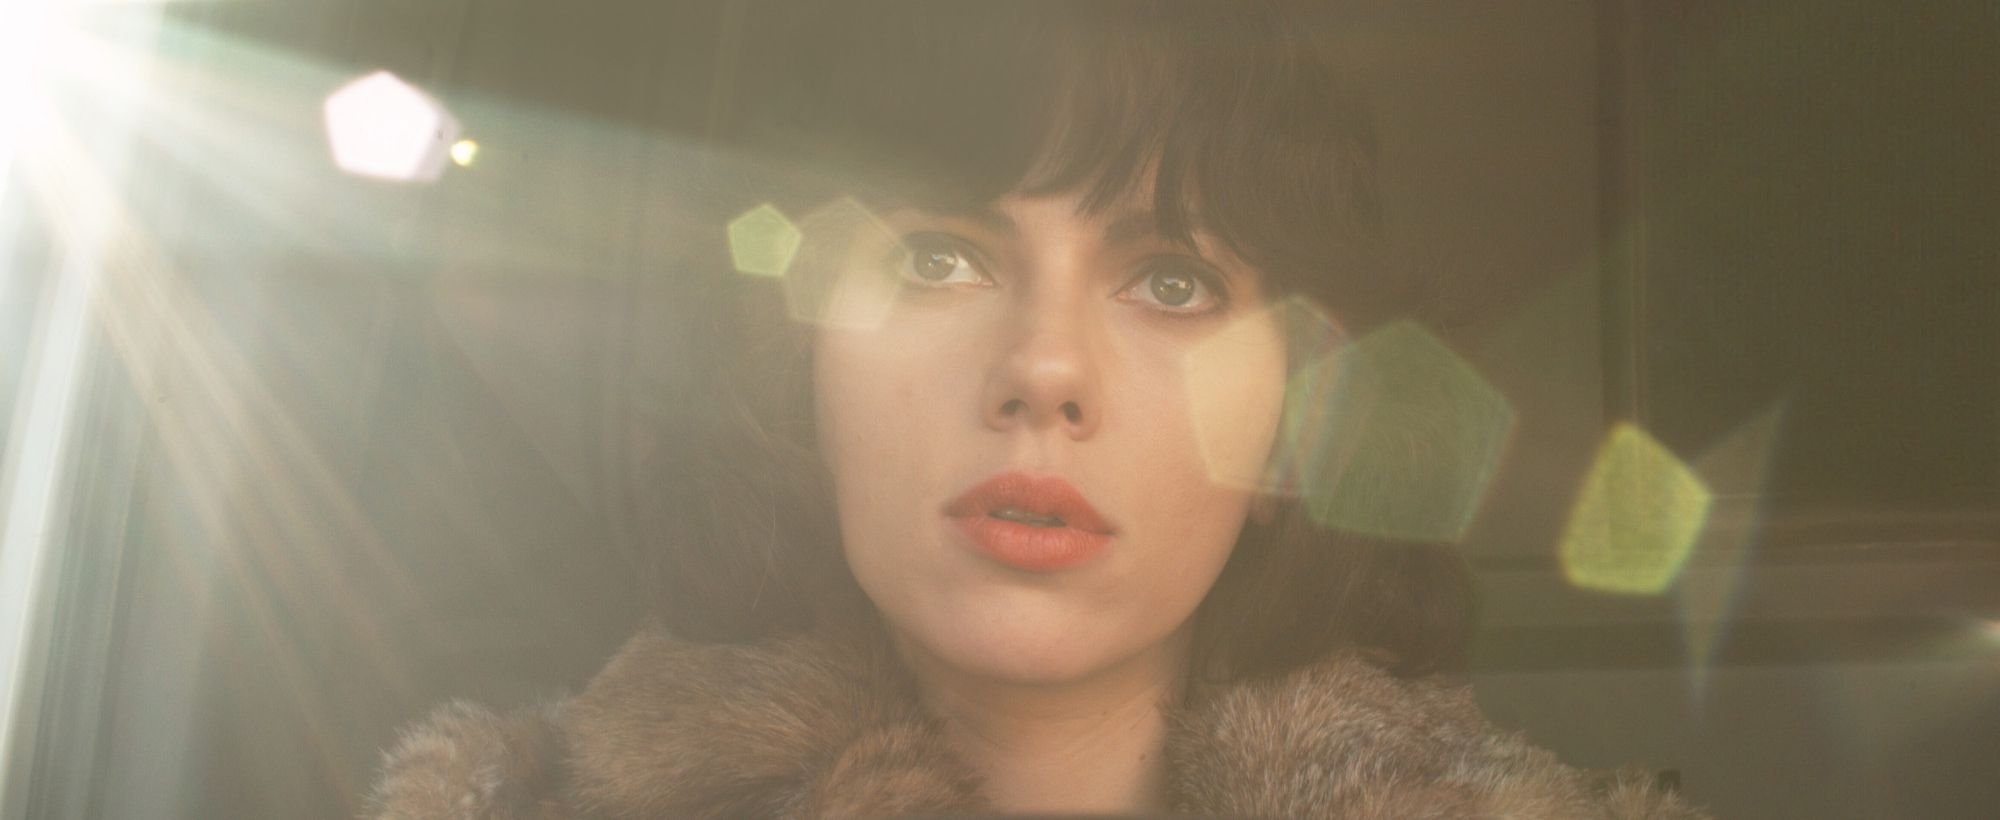 An image from Under the Skin